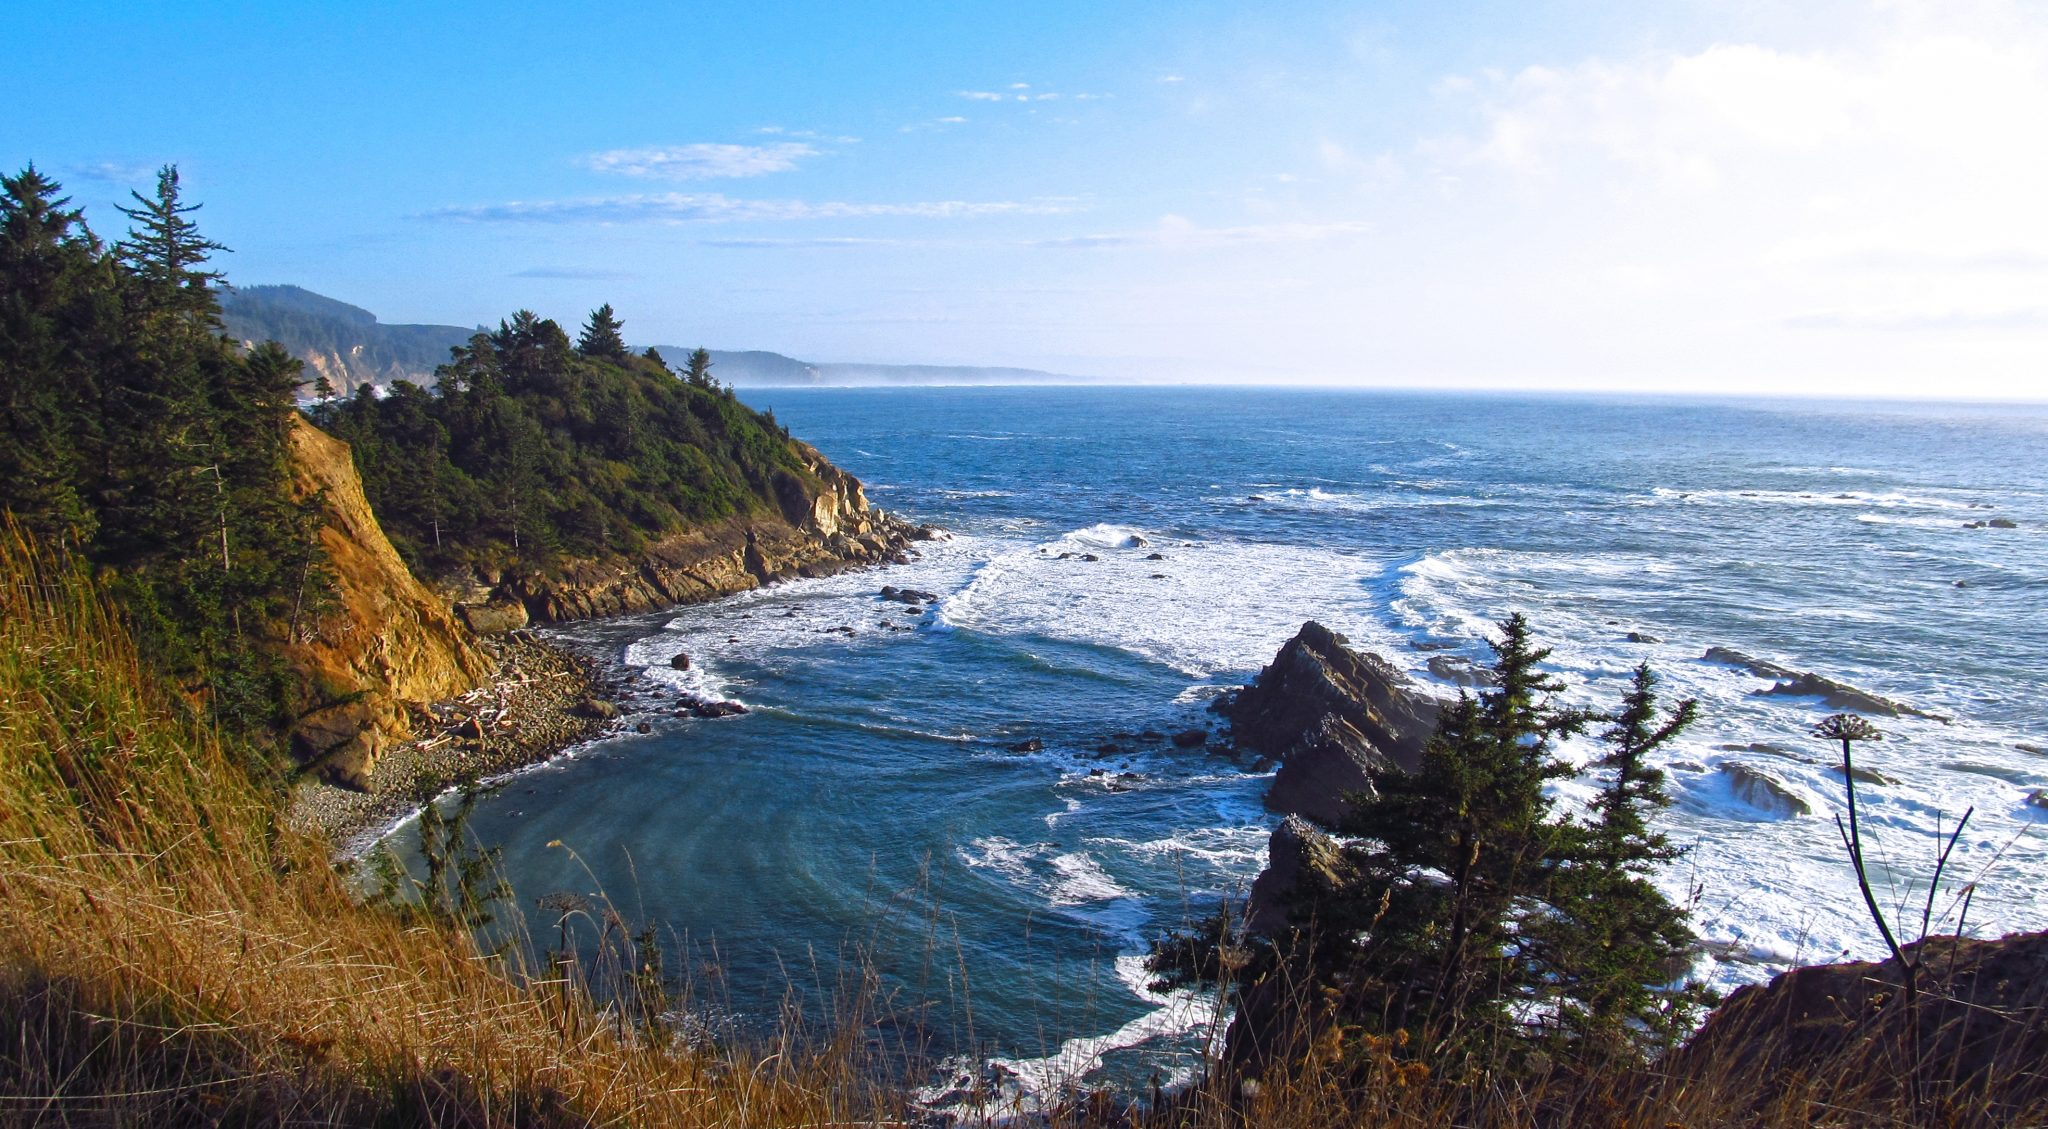 Gorgeous Cove Near Coos Bay, Oregon